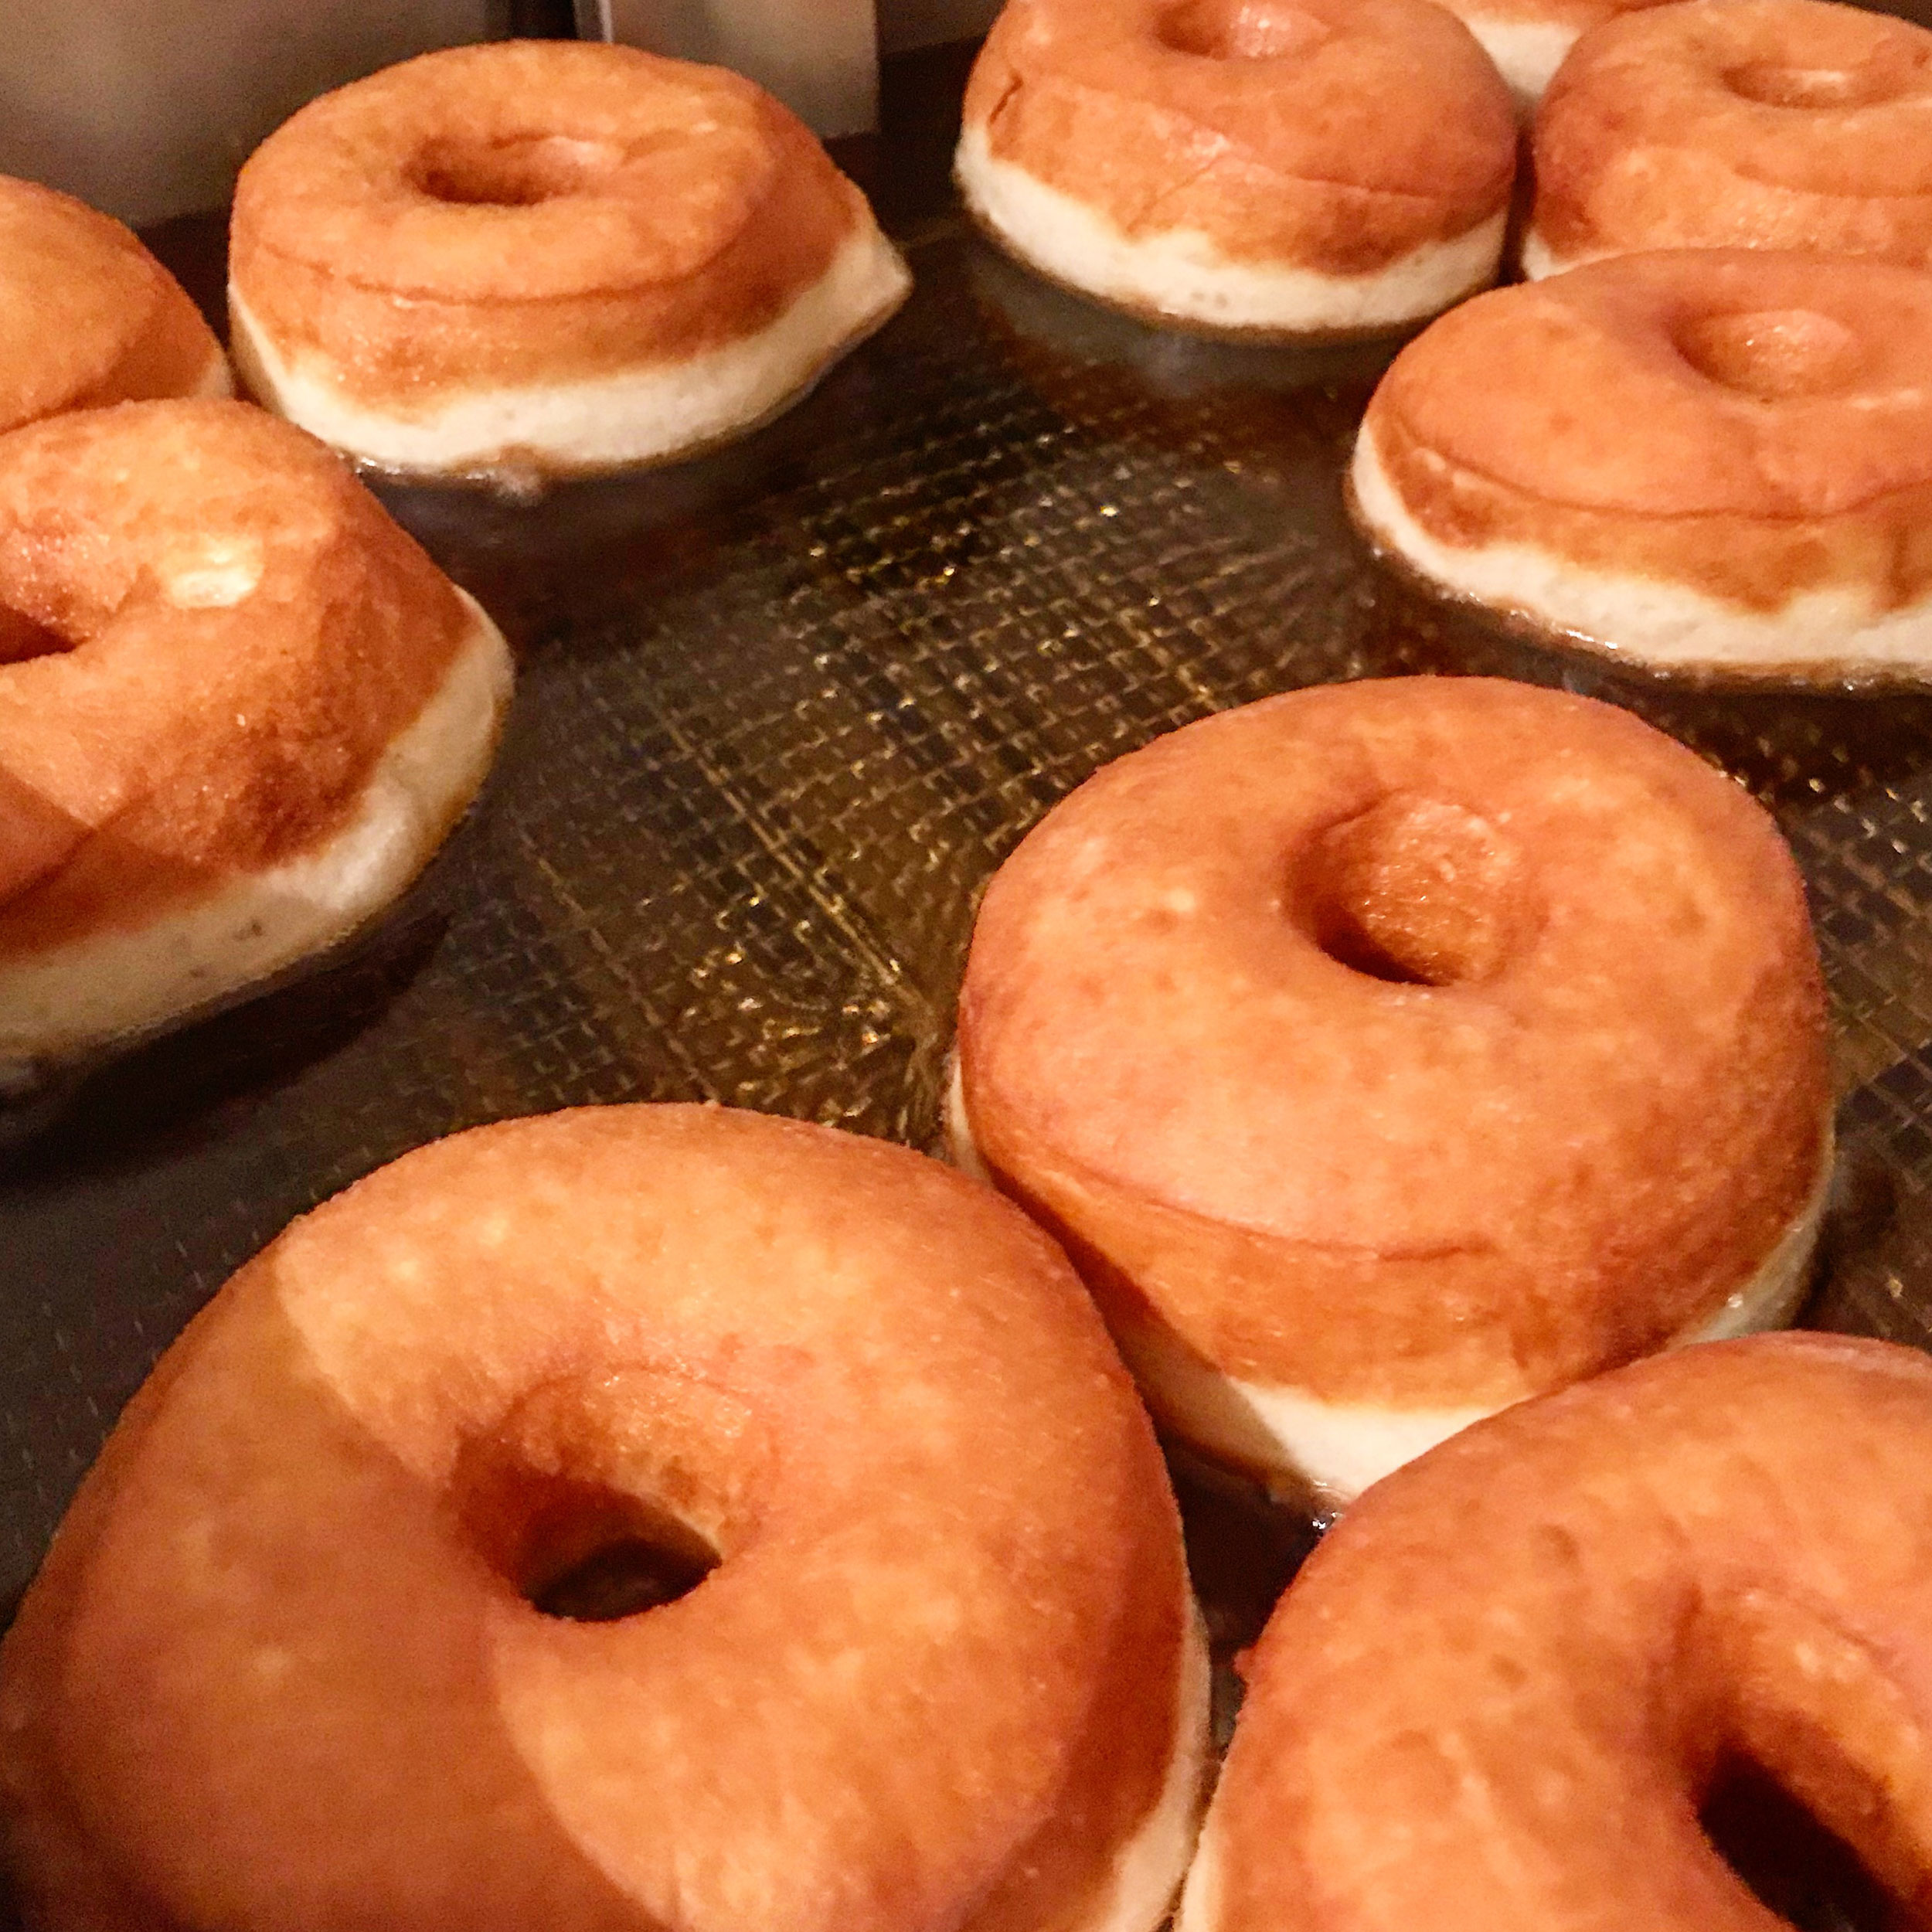 Yes! Doughnuts being created